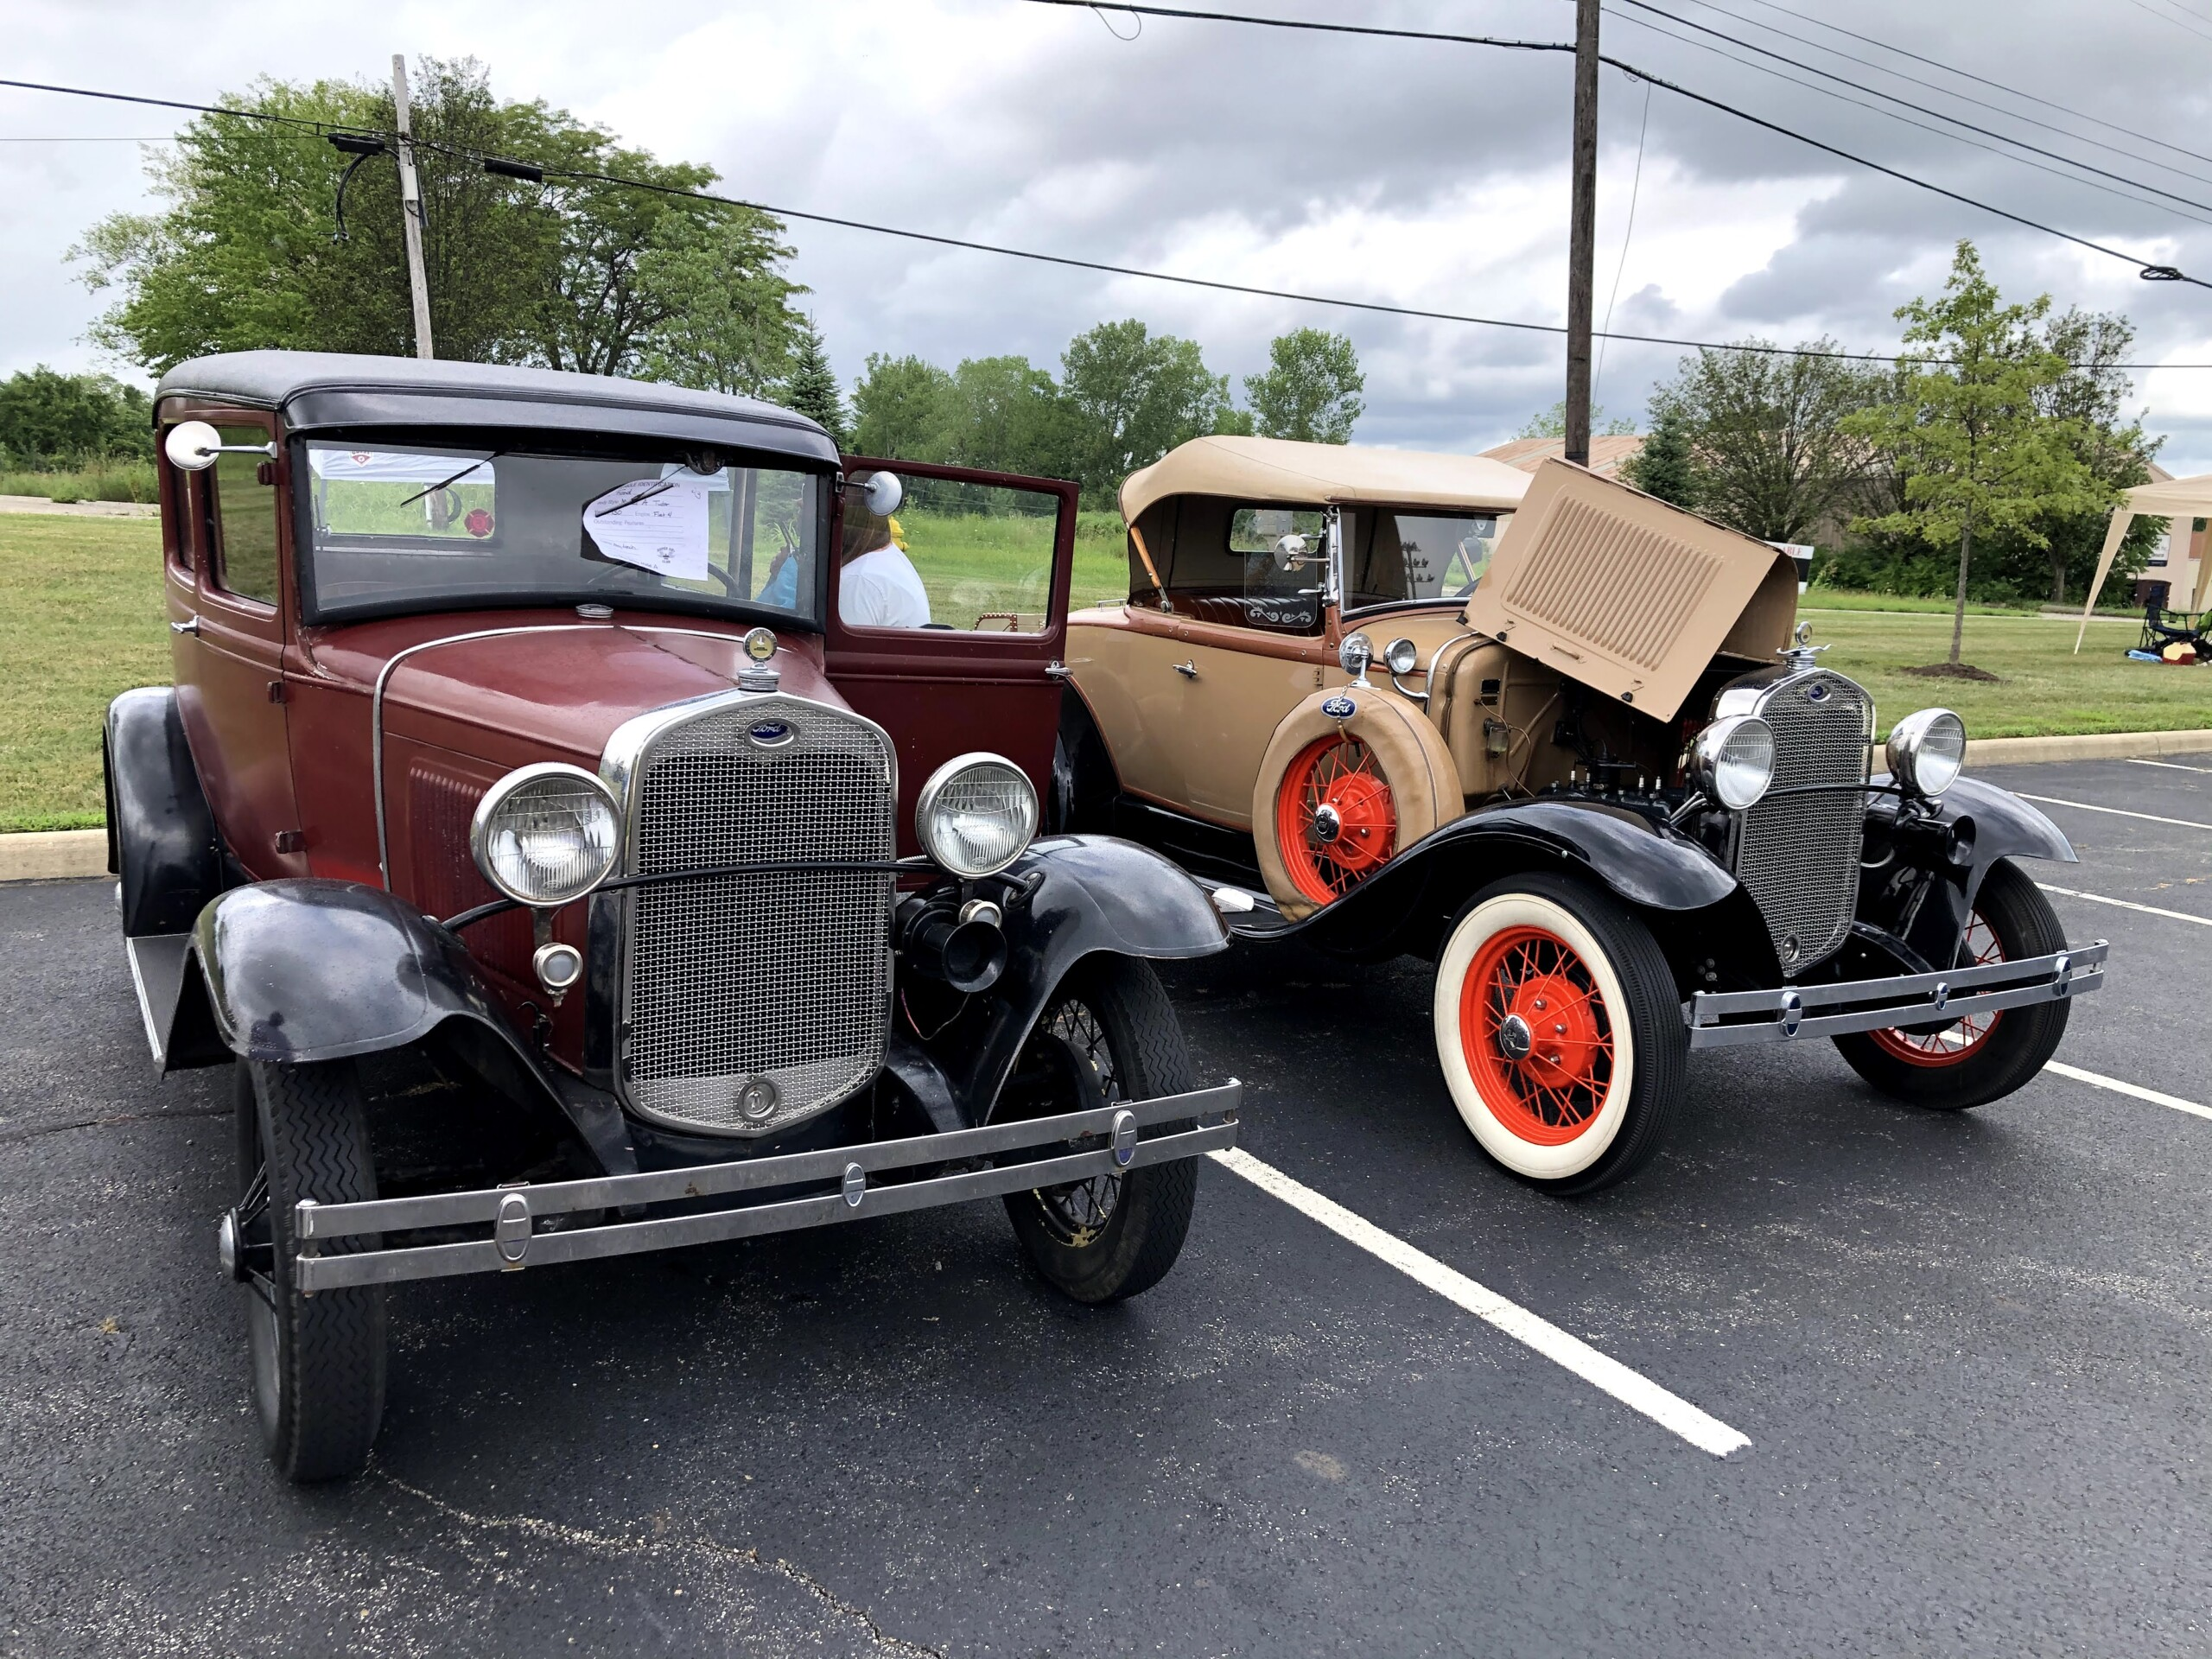 Old Fashioned cars